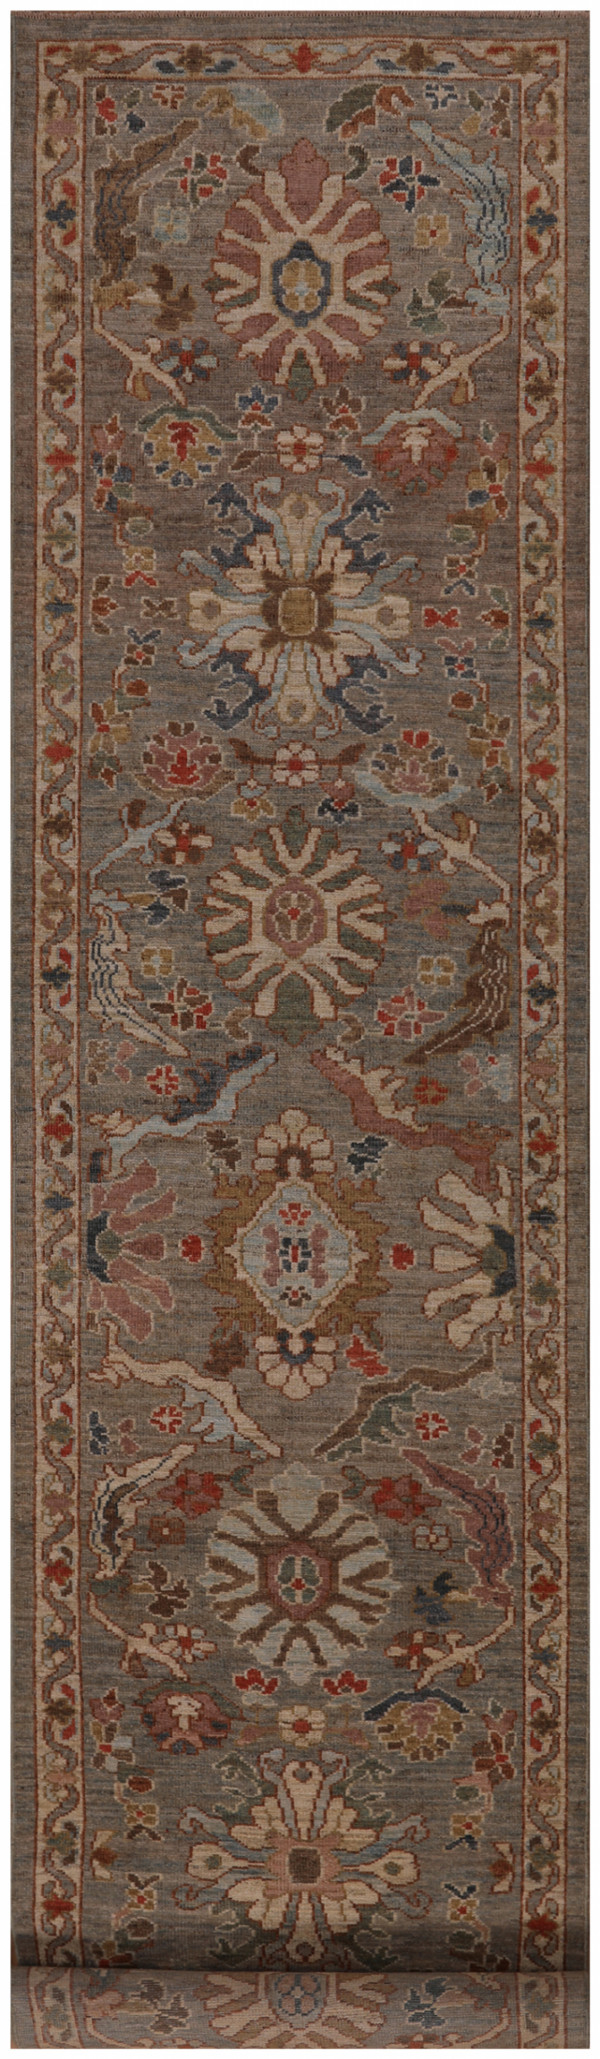 #42049 Sultanabad Persian Rug